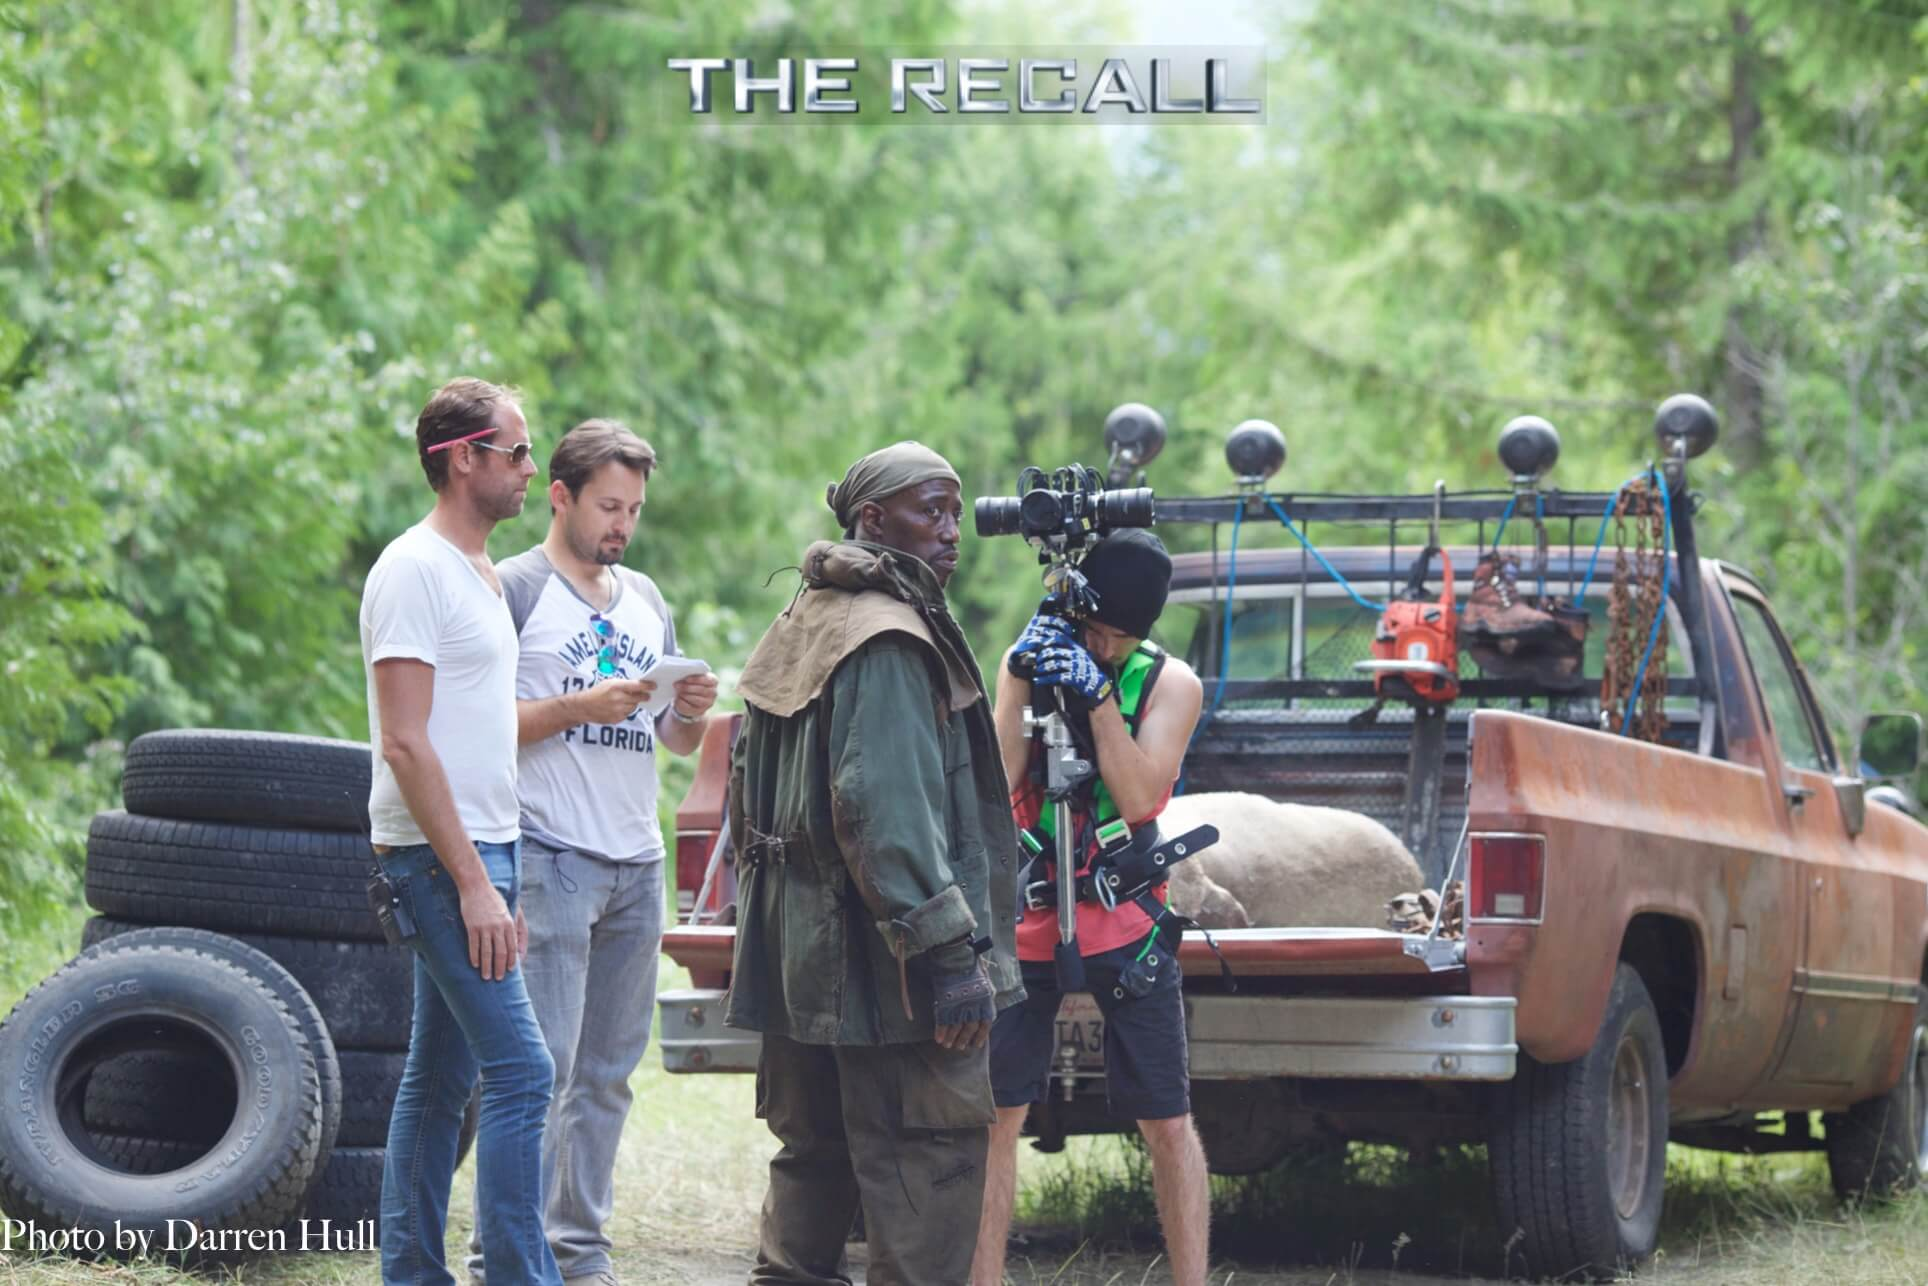 Wesley Snipes the recall abduction5 1 - Wesley Snipes Fights Aliens in The Recall VR Abduction